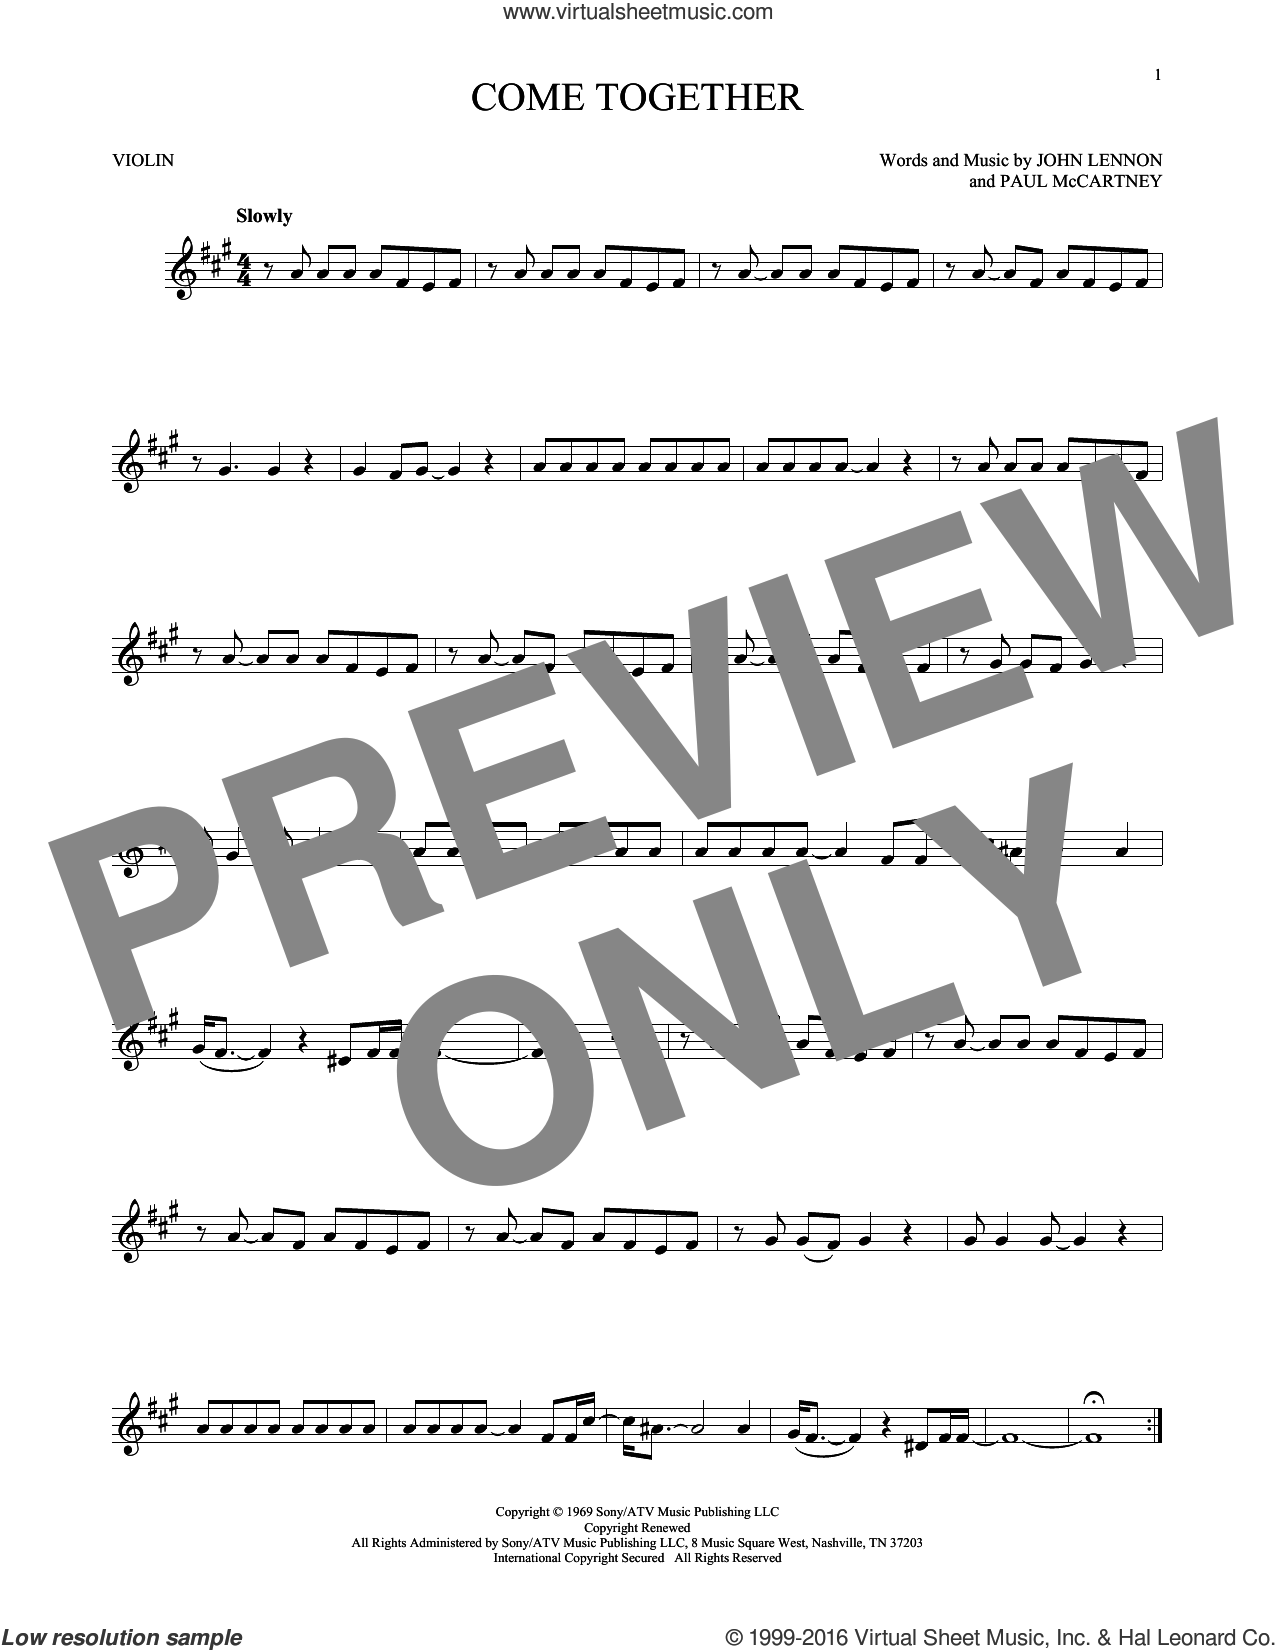 Come Together sheet music for violin solo by The Beatles, John Lennon and Paul McCartney. Score Image Preview.